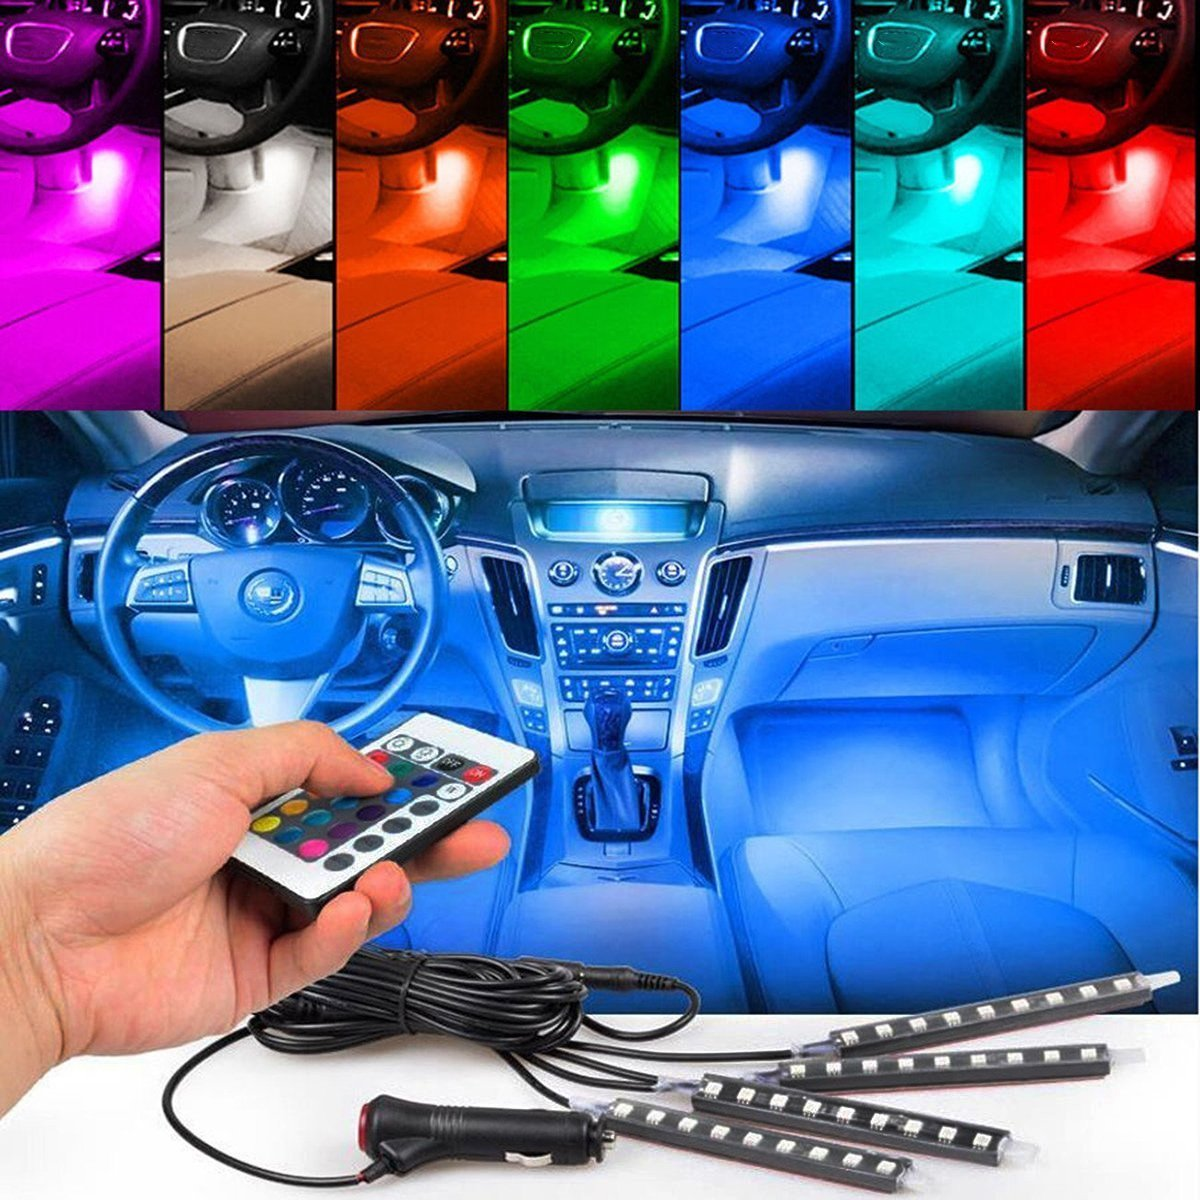 4pcs Car Interior Decoration NERLMIAY Atmosphere Light-LED Car Interior Lighting Kit with 7 Color Waterproof Interior Atmosphere Neon Lights Strip for Car